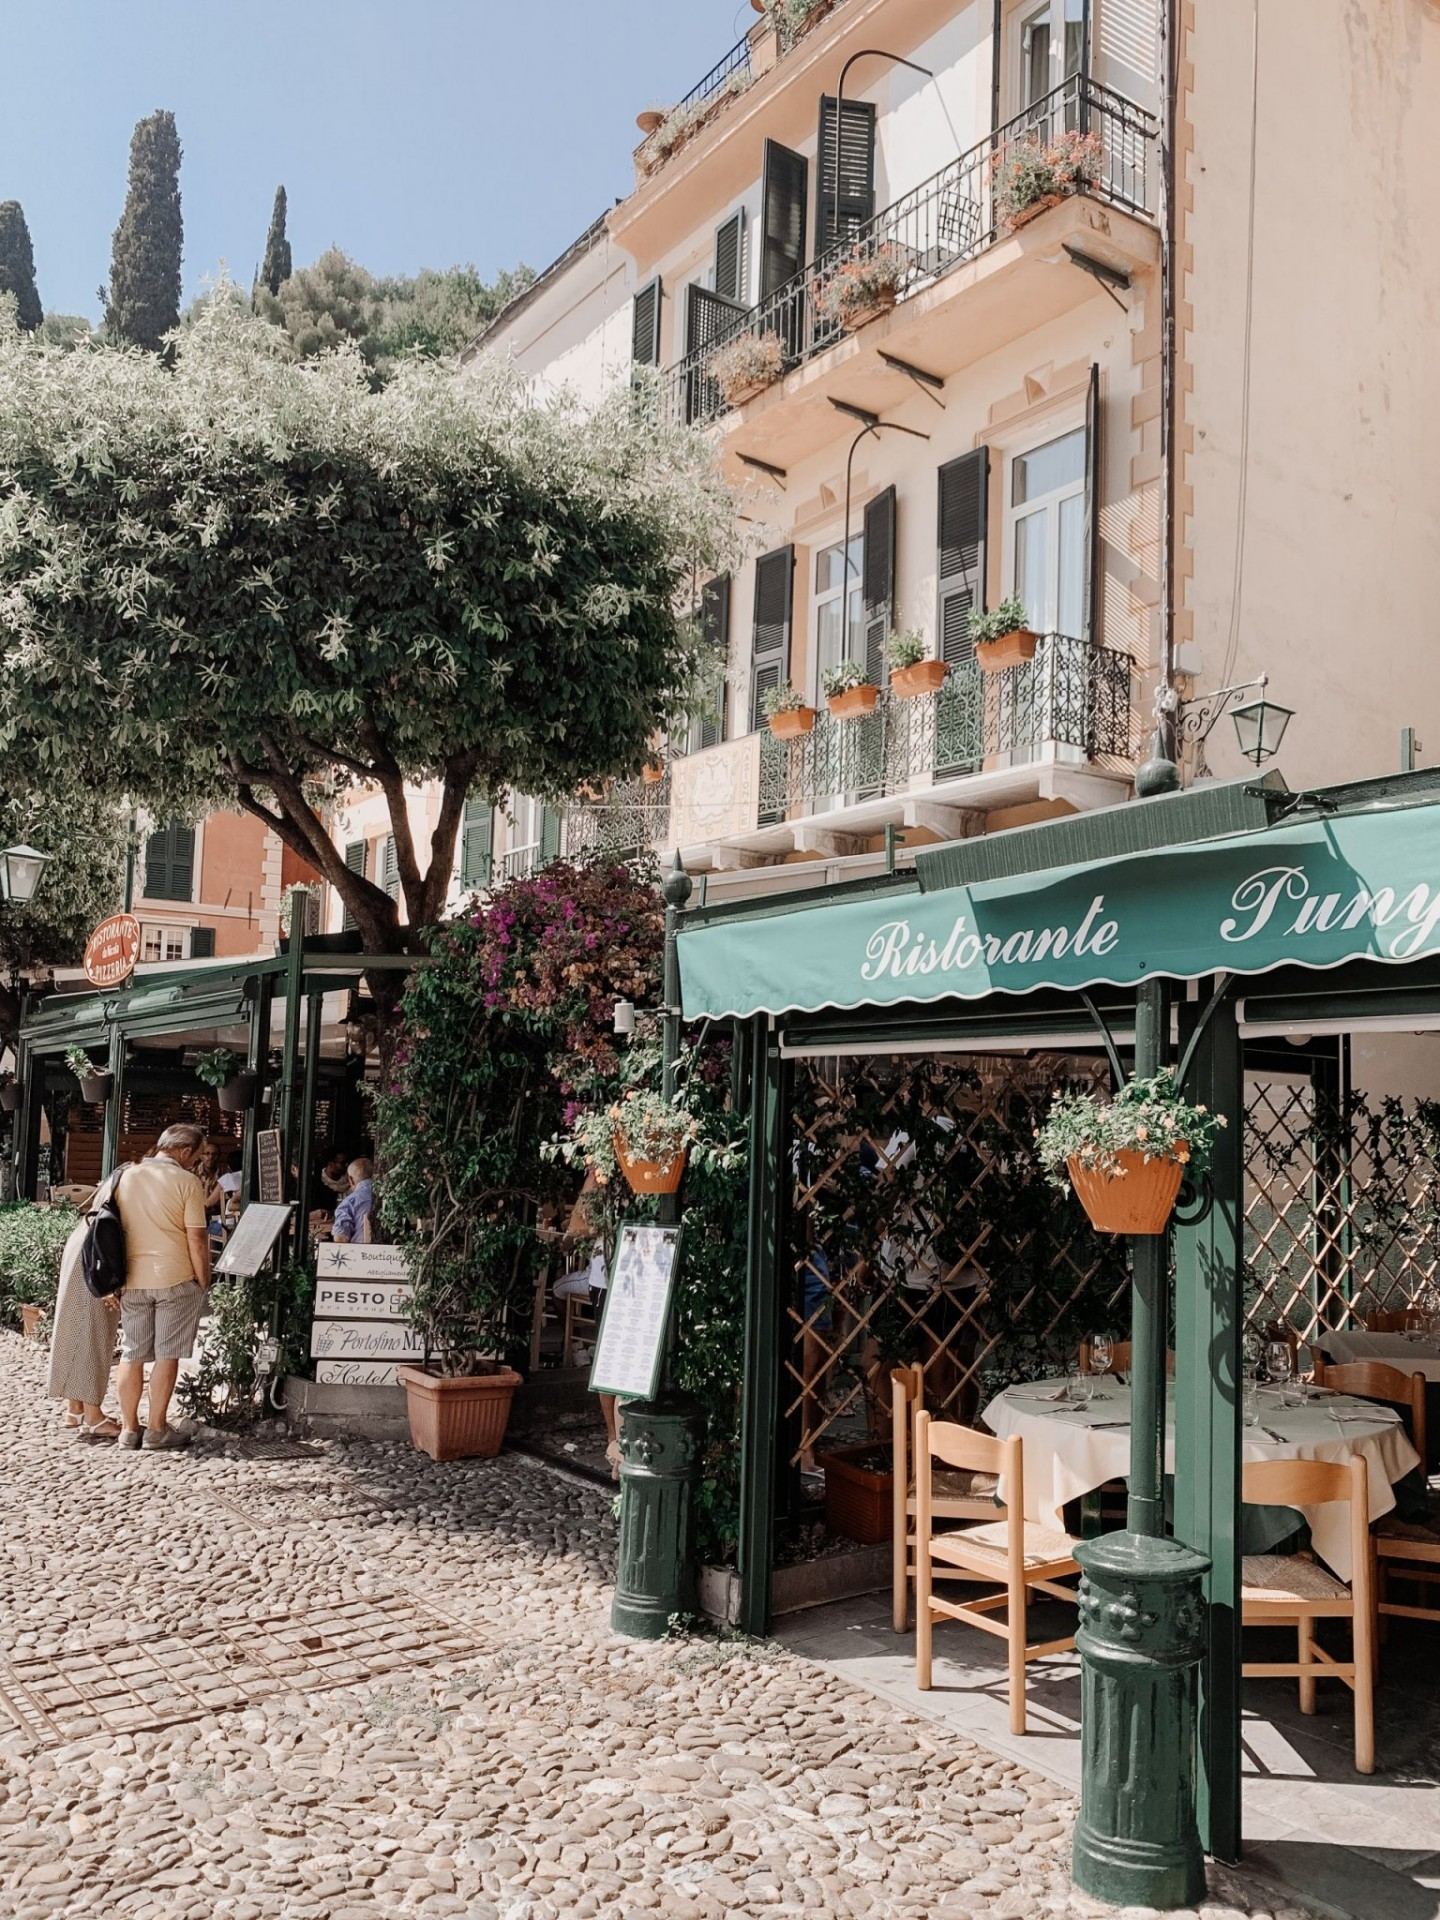 Lifestyle blogger Mollie Moore shares a Portofino Travel Guide | Travel Guide: Best Things to do in Portofino Italy by popular international travel blogger, Mollie Moore: image of a restaurant in Portofino Italy.